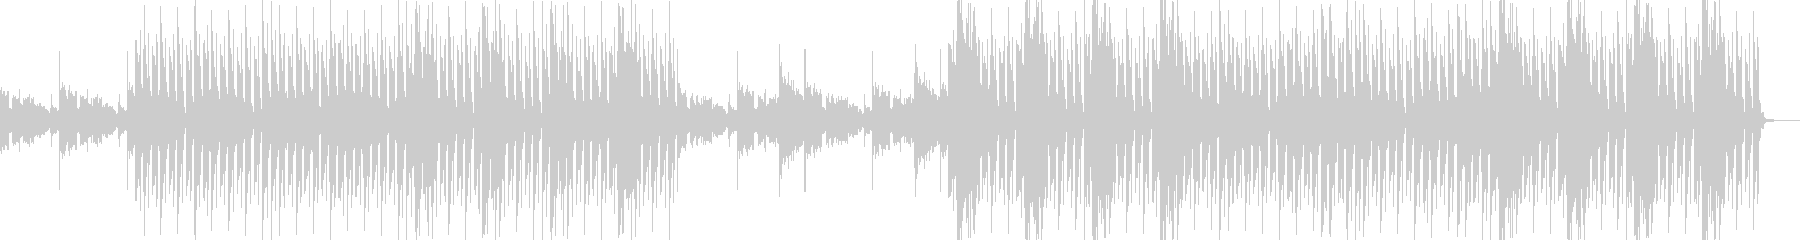 Near-future tension/texture opening's unreproduced waveform